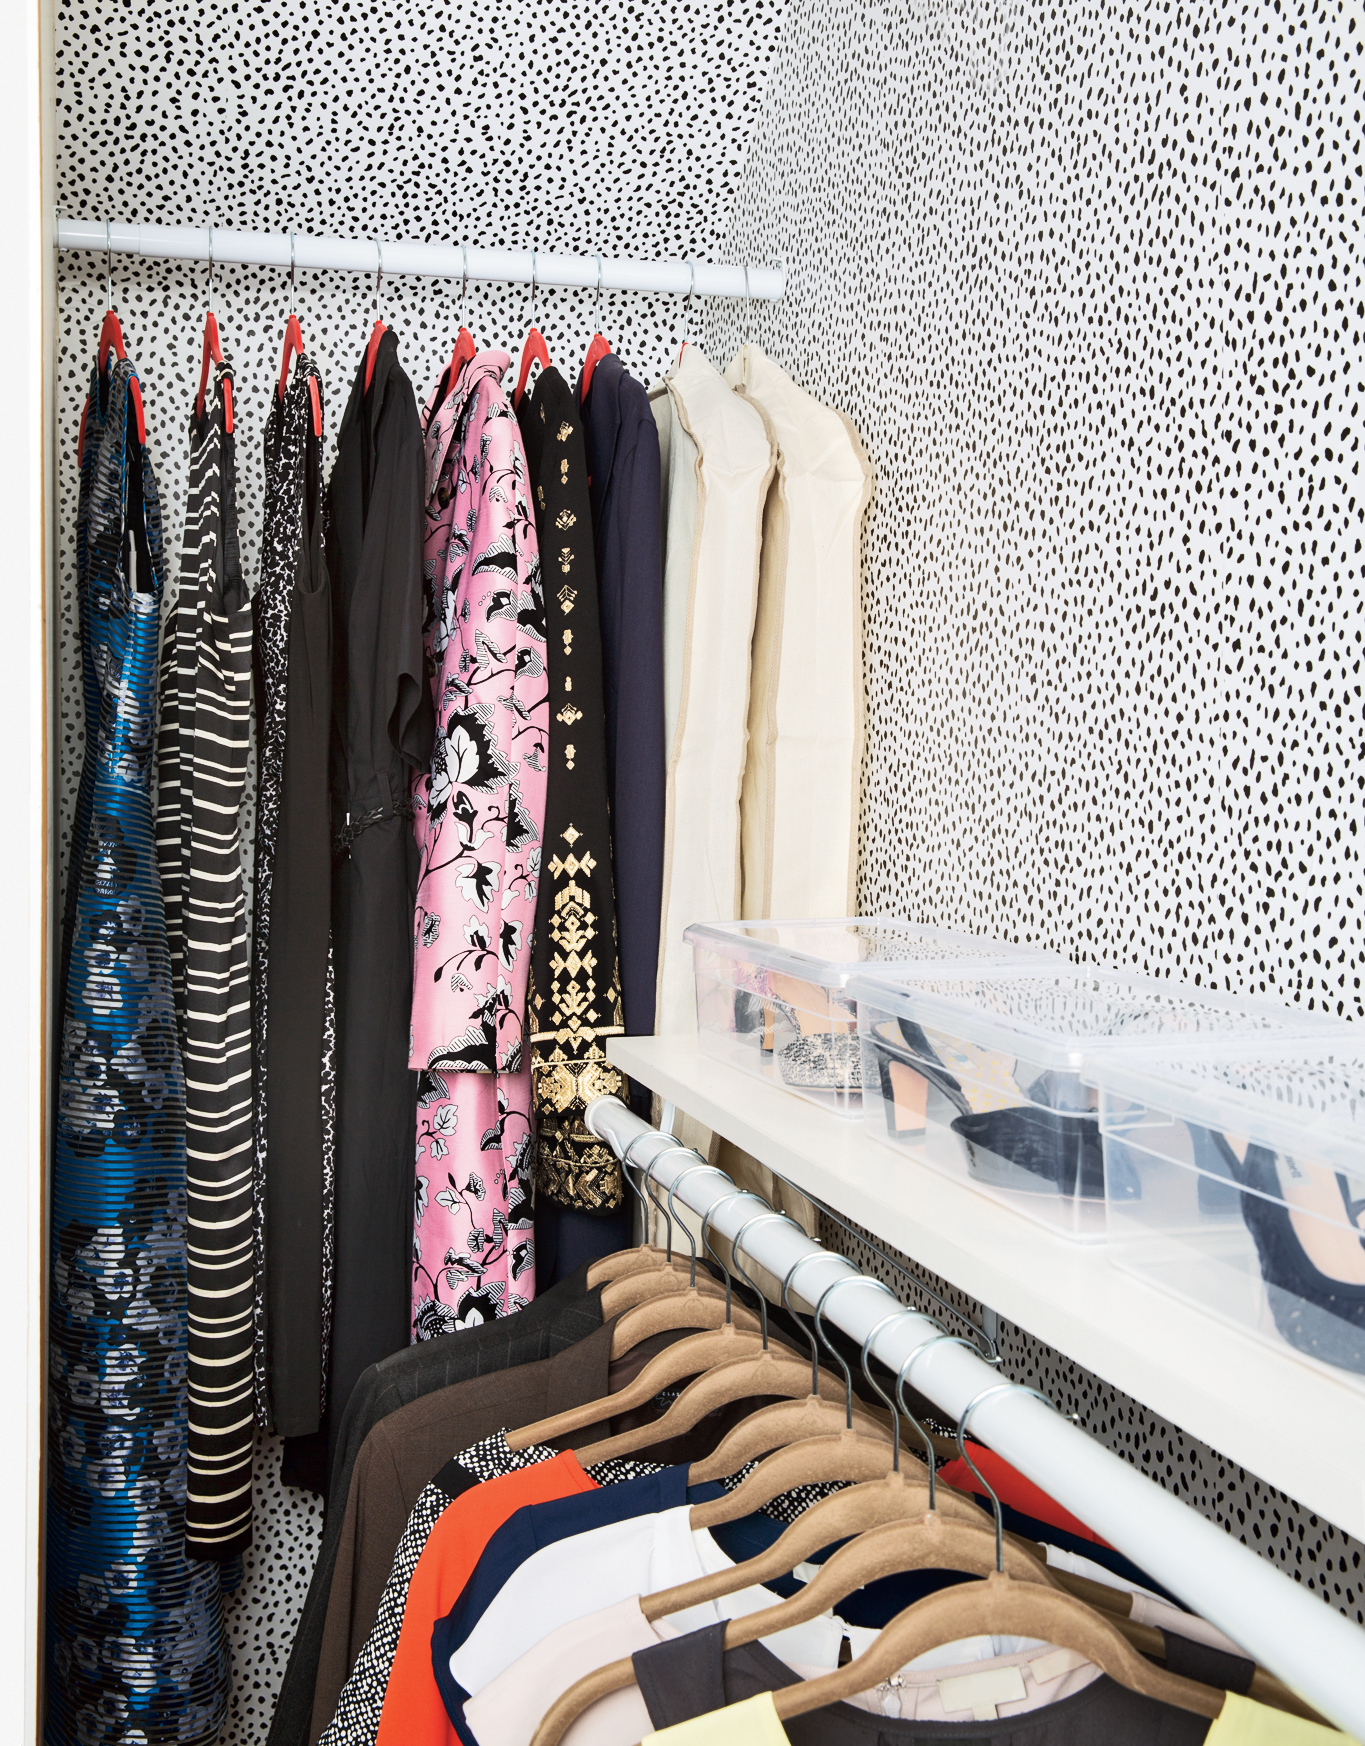 how-to-save-money-on-your-wardrobe